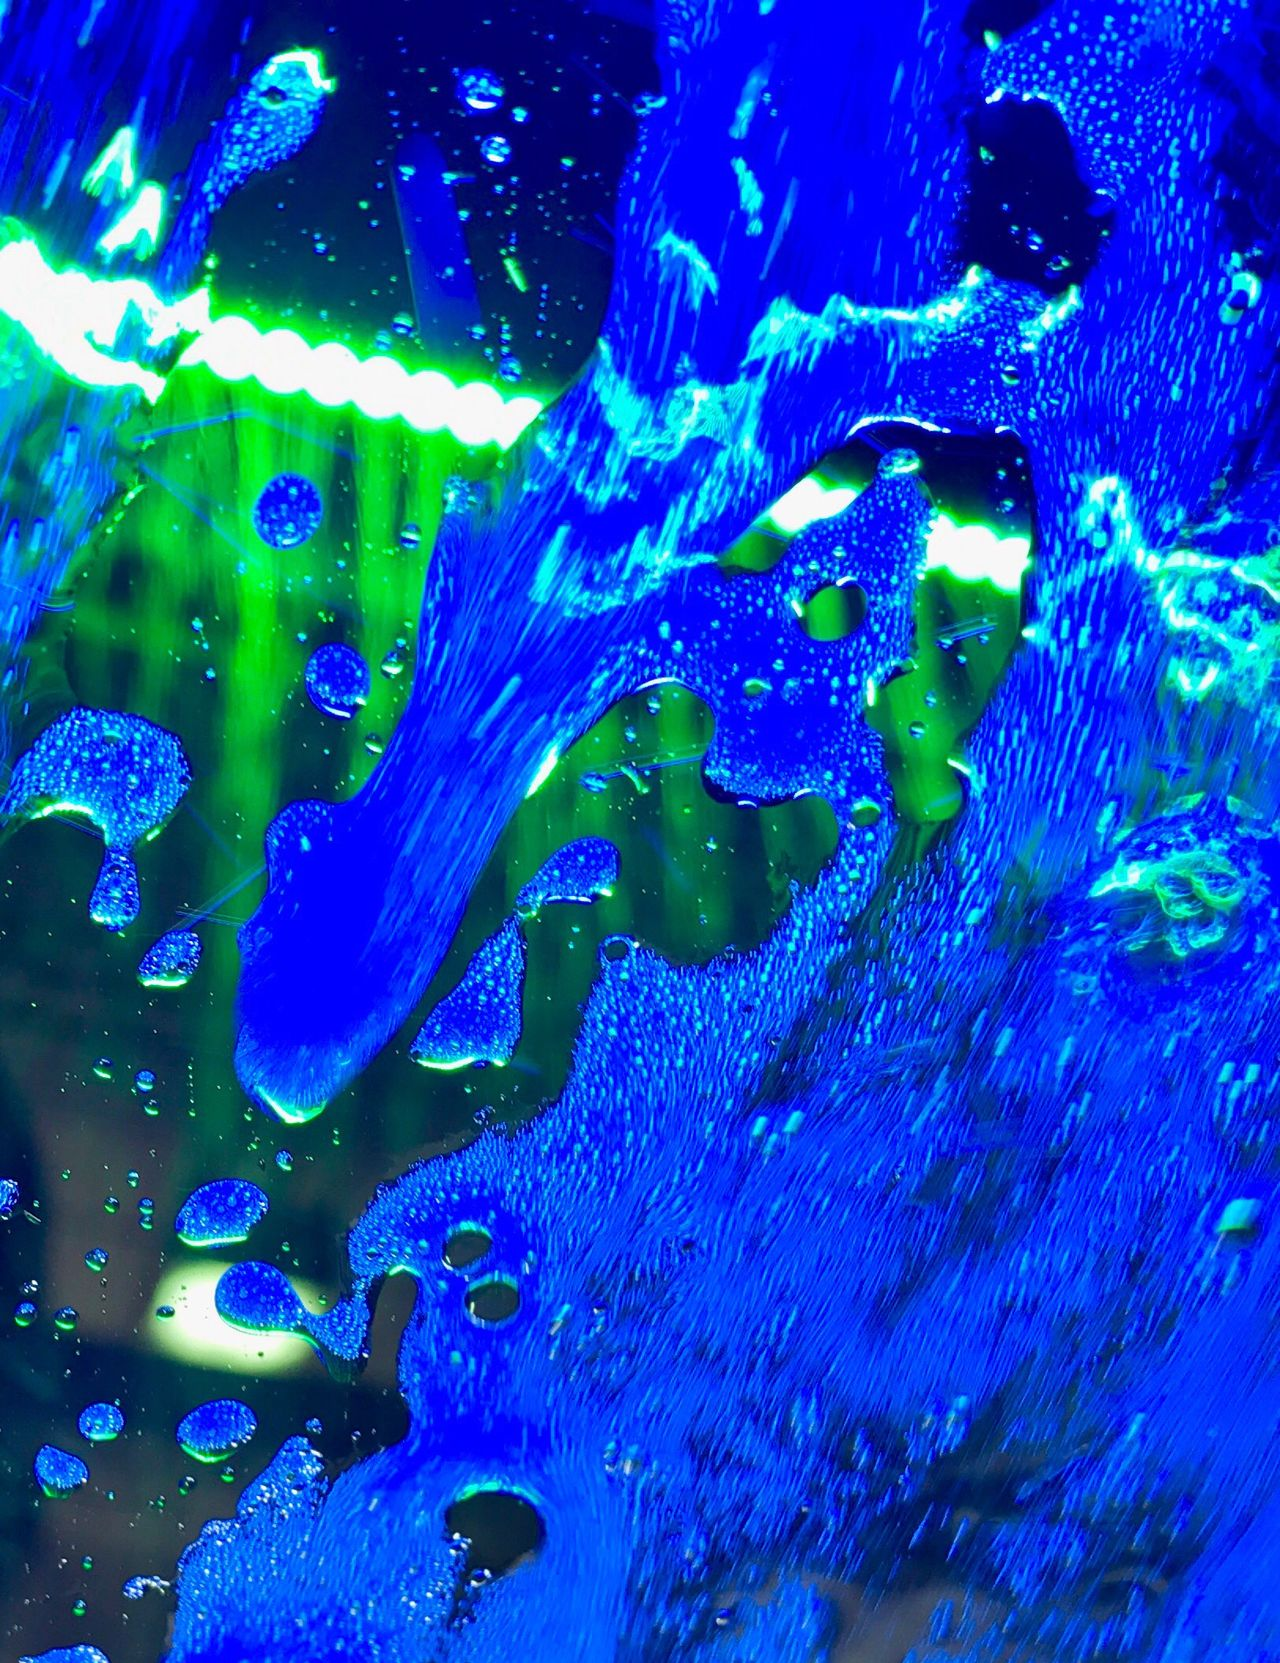 Blue Water No People Beauty In Nature Nature EyeEm Best Shots EyeEmNewHere Check This Out Colors Multi Colored Abstract Abstractions In Colors Close-up Outdoors UnderSea Day